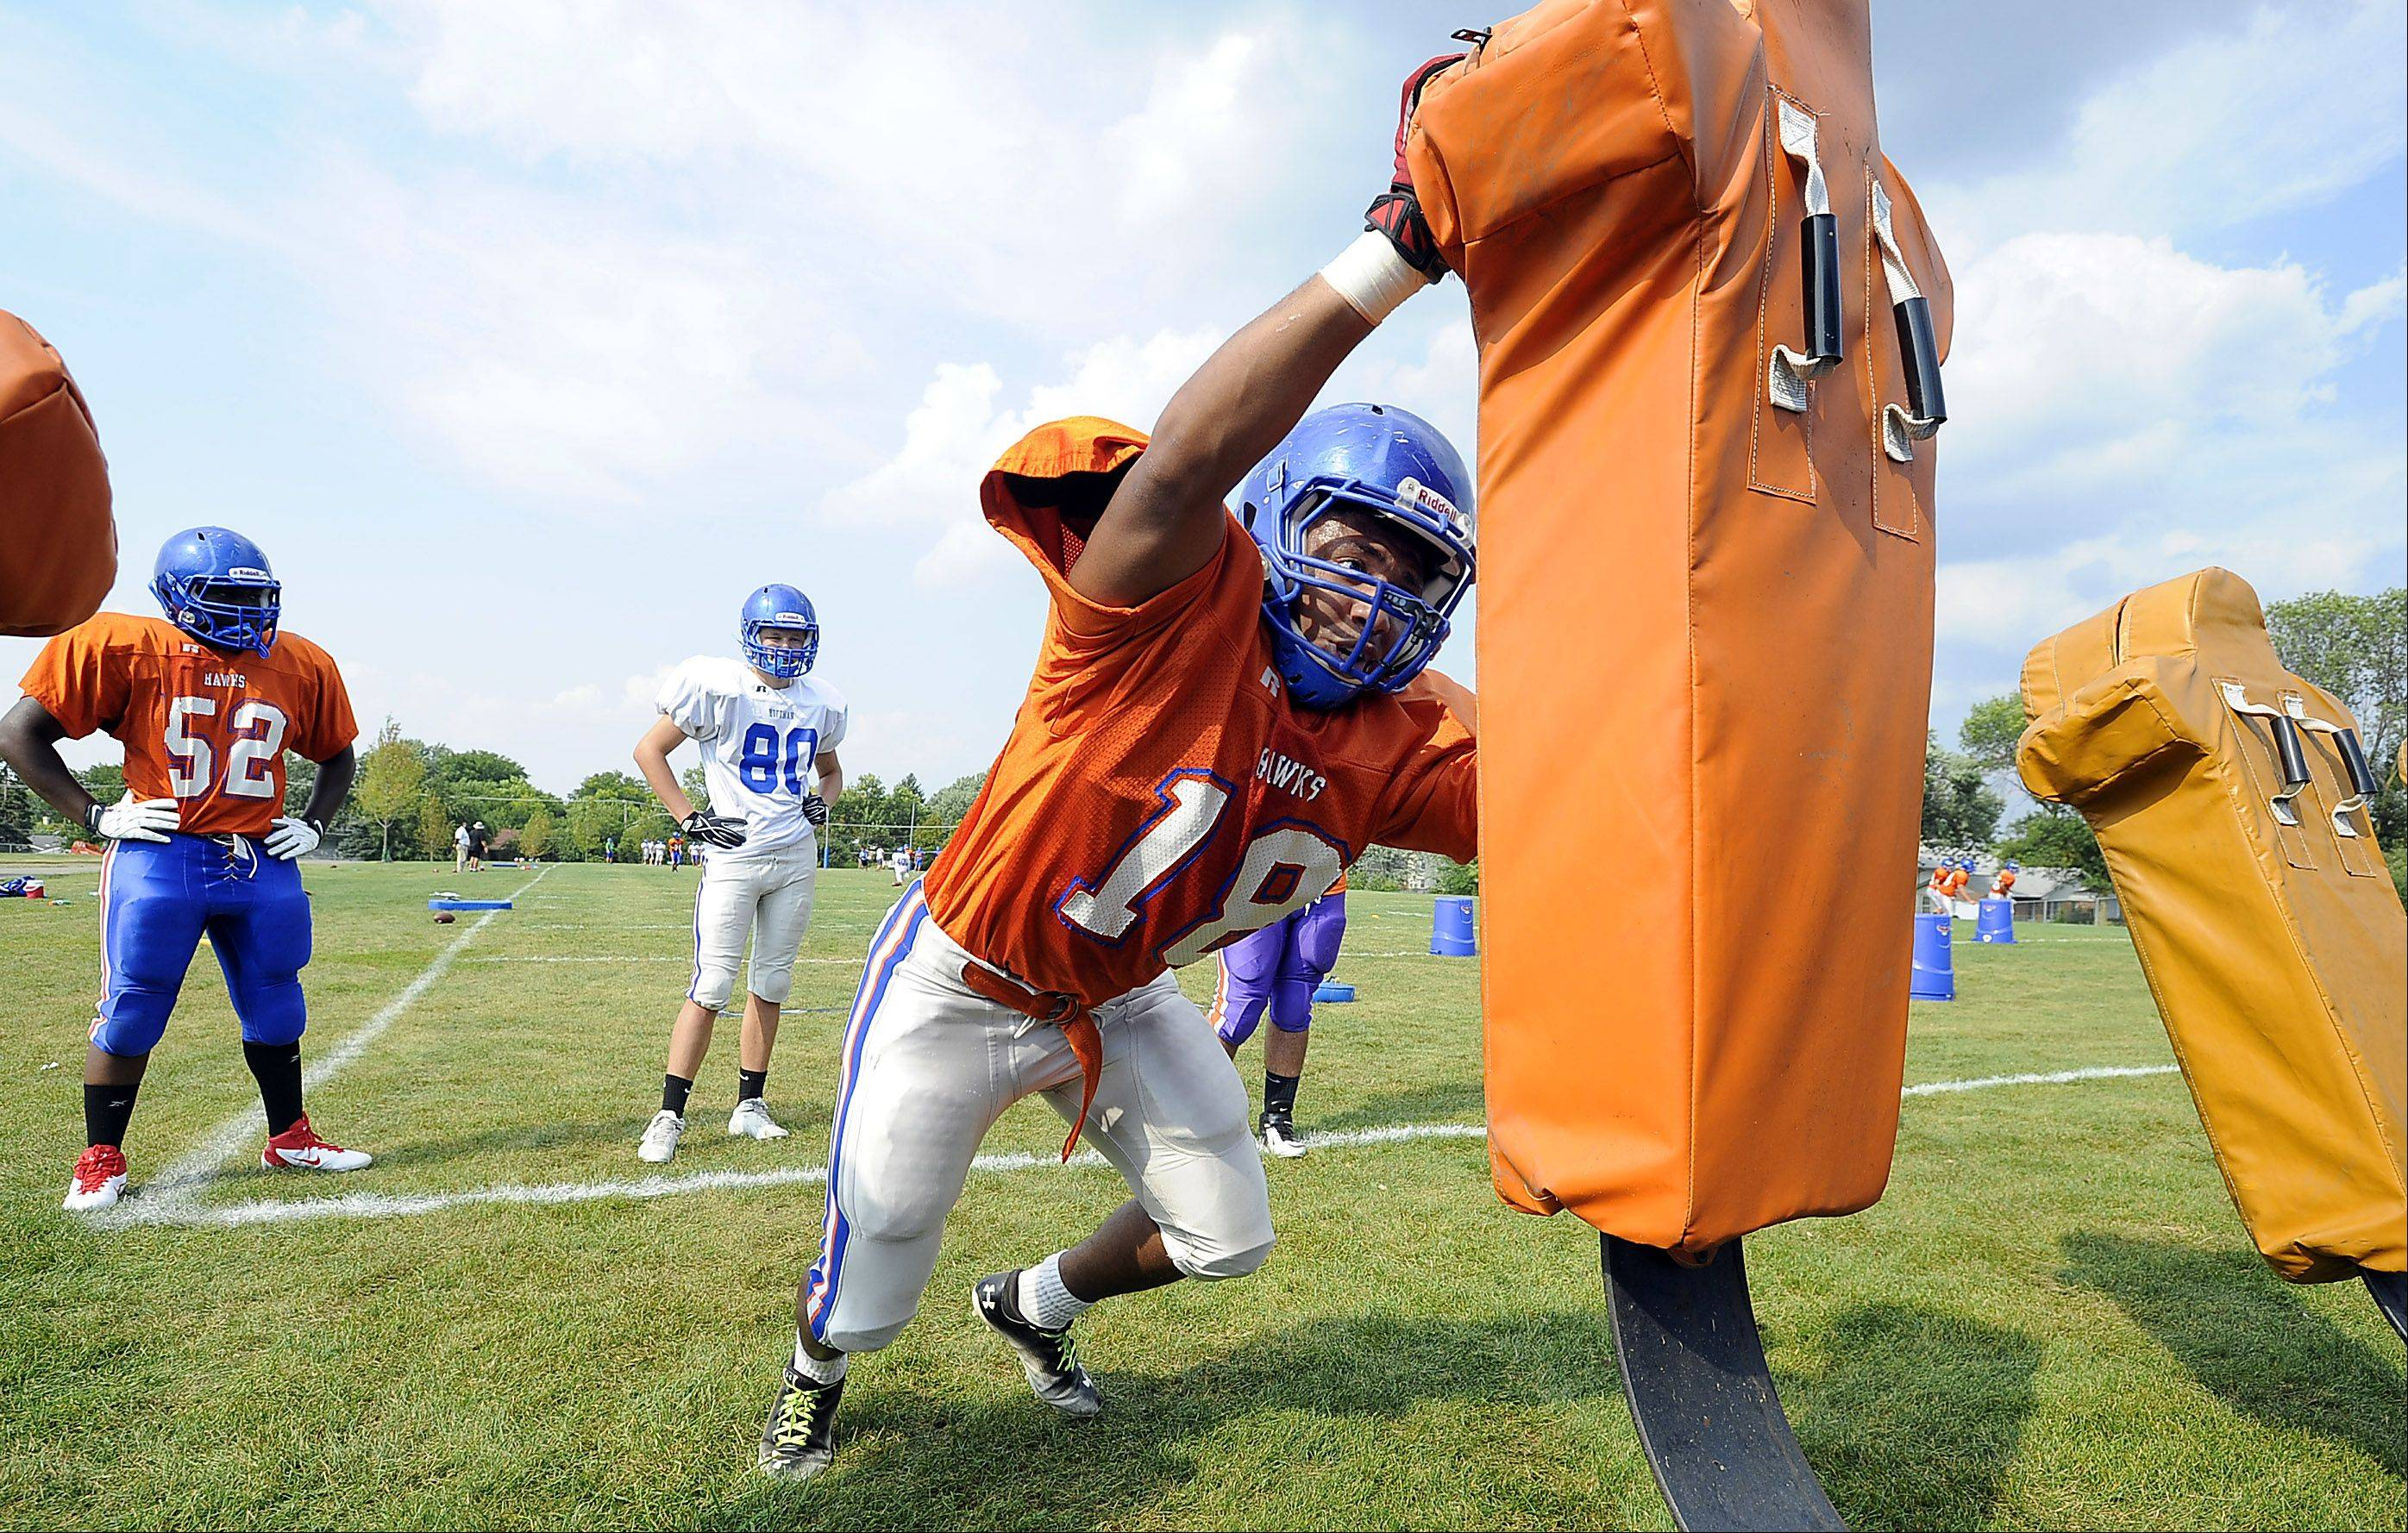 Hoffman Estates Tylic Grace gives his best effort during football practice.